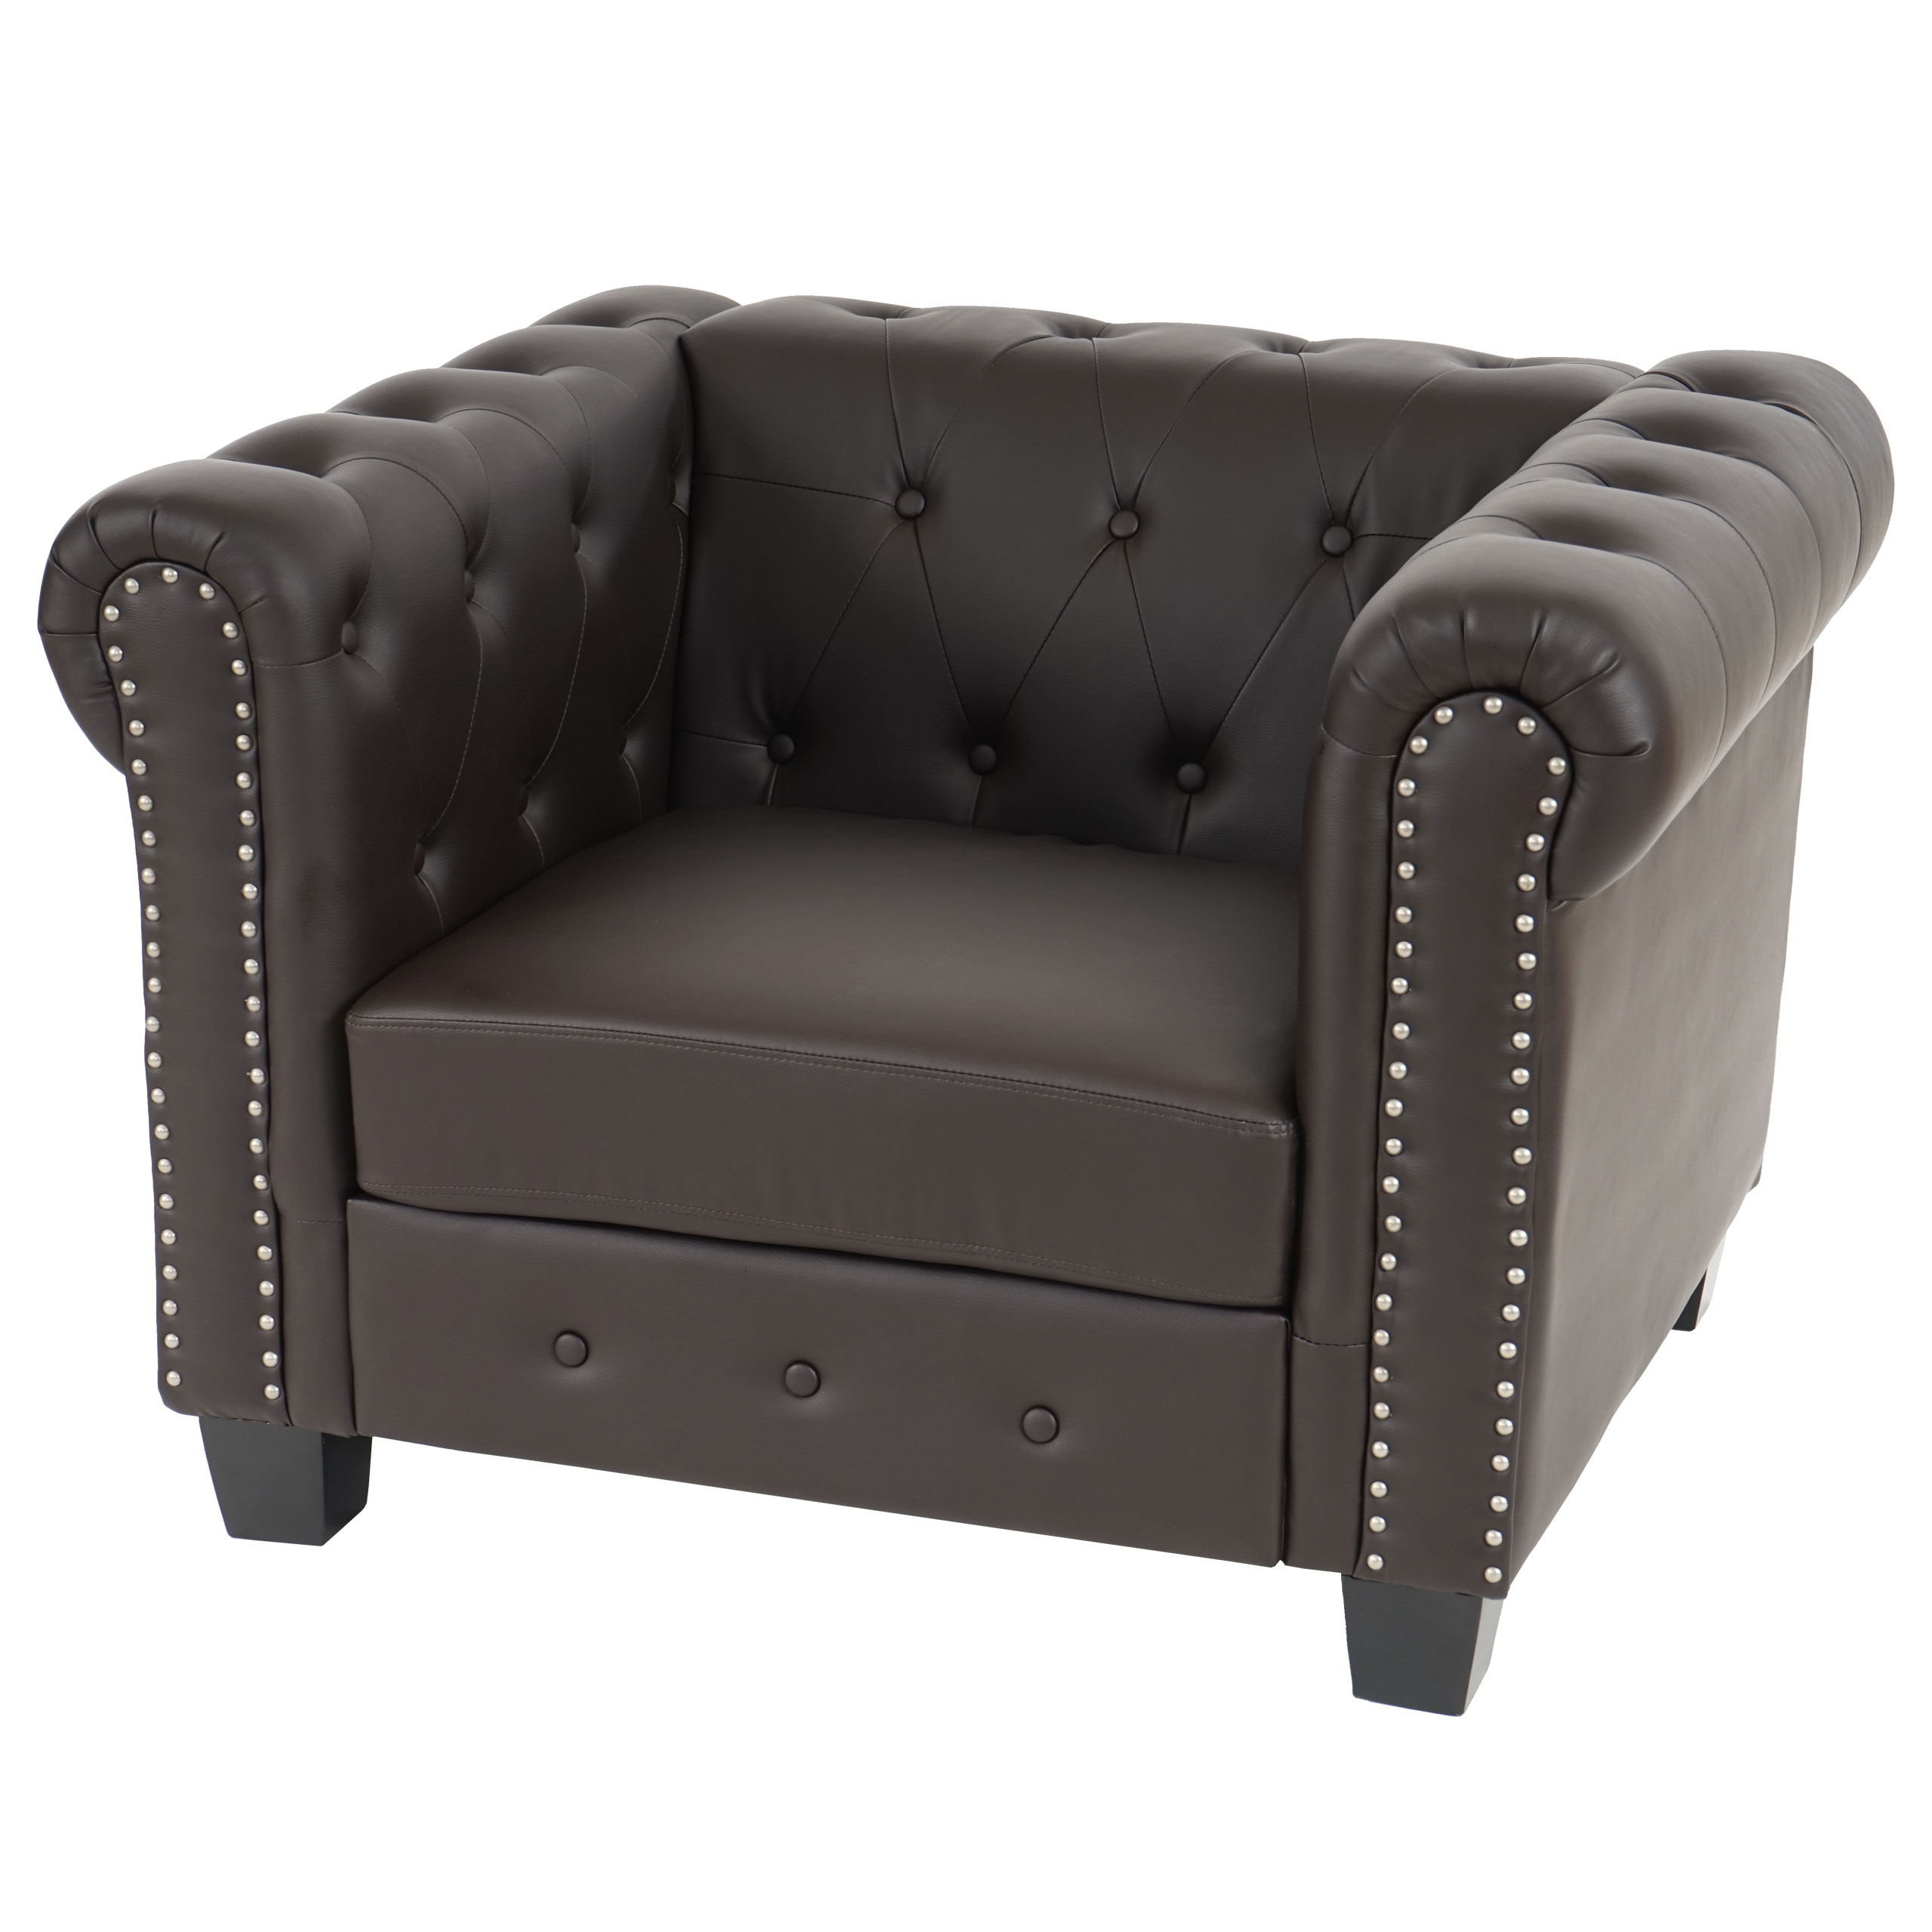 fauteuil style luxe chesterfield noir faut luxechest hw vente de meubles et d 39 articles de. Black Bedroom Furniture Sets. Home Design Ideas